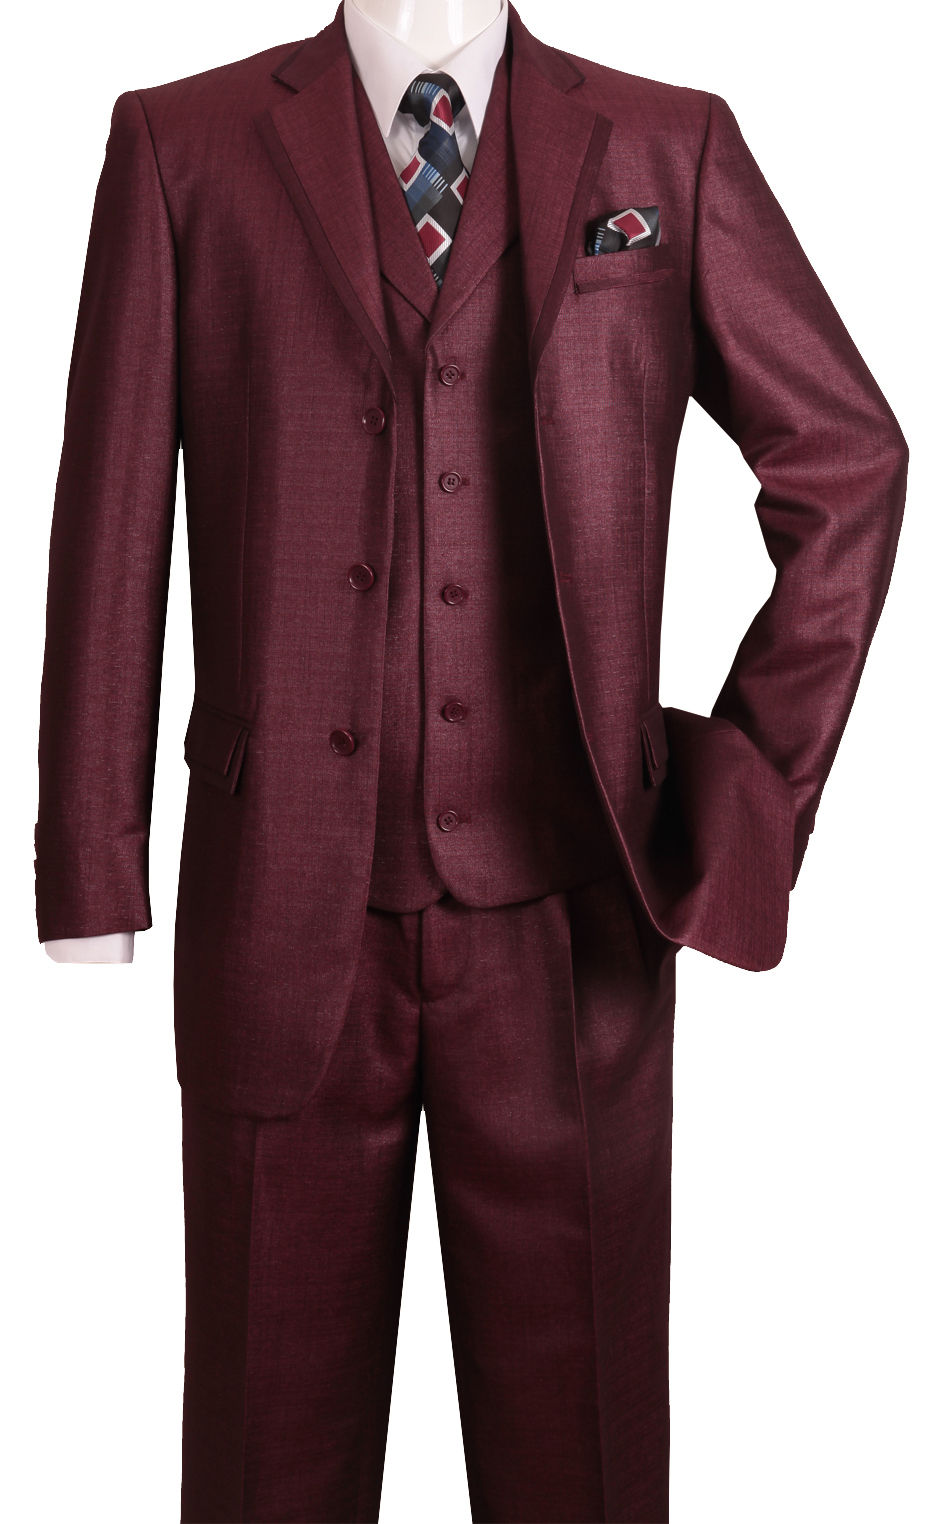 Fortino Landi Men Suit 5909V-Burgundy - Church Suits For Less